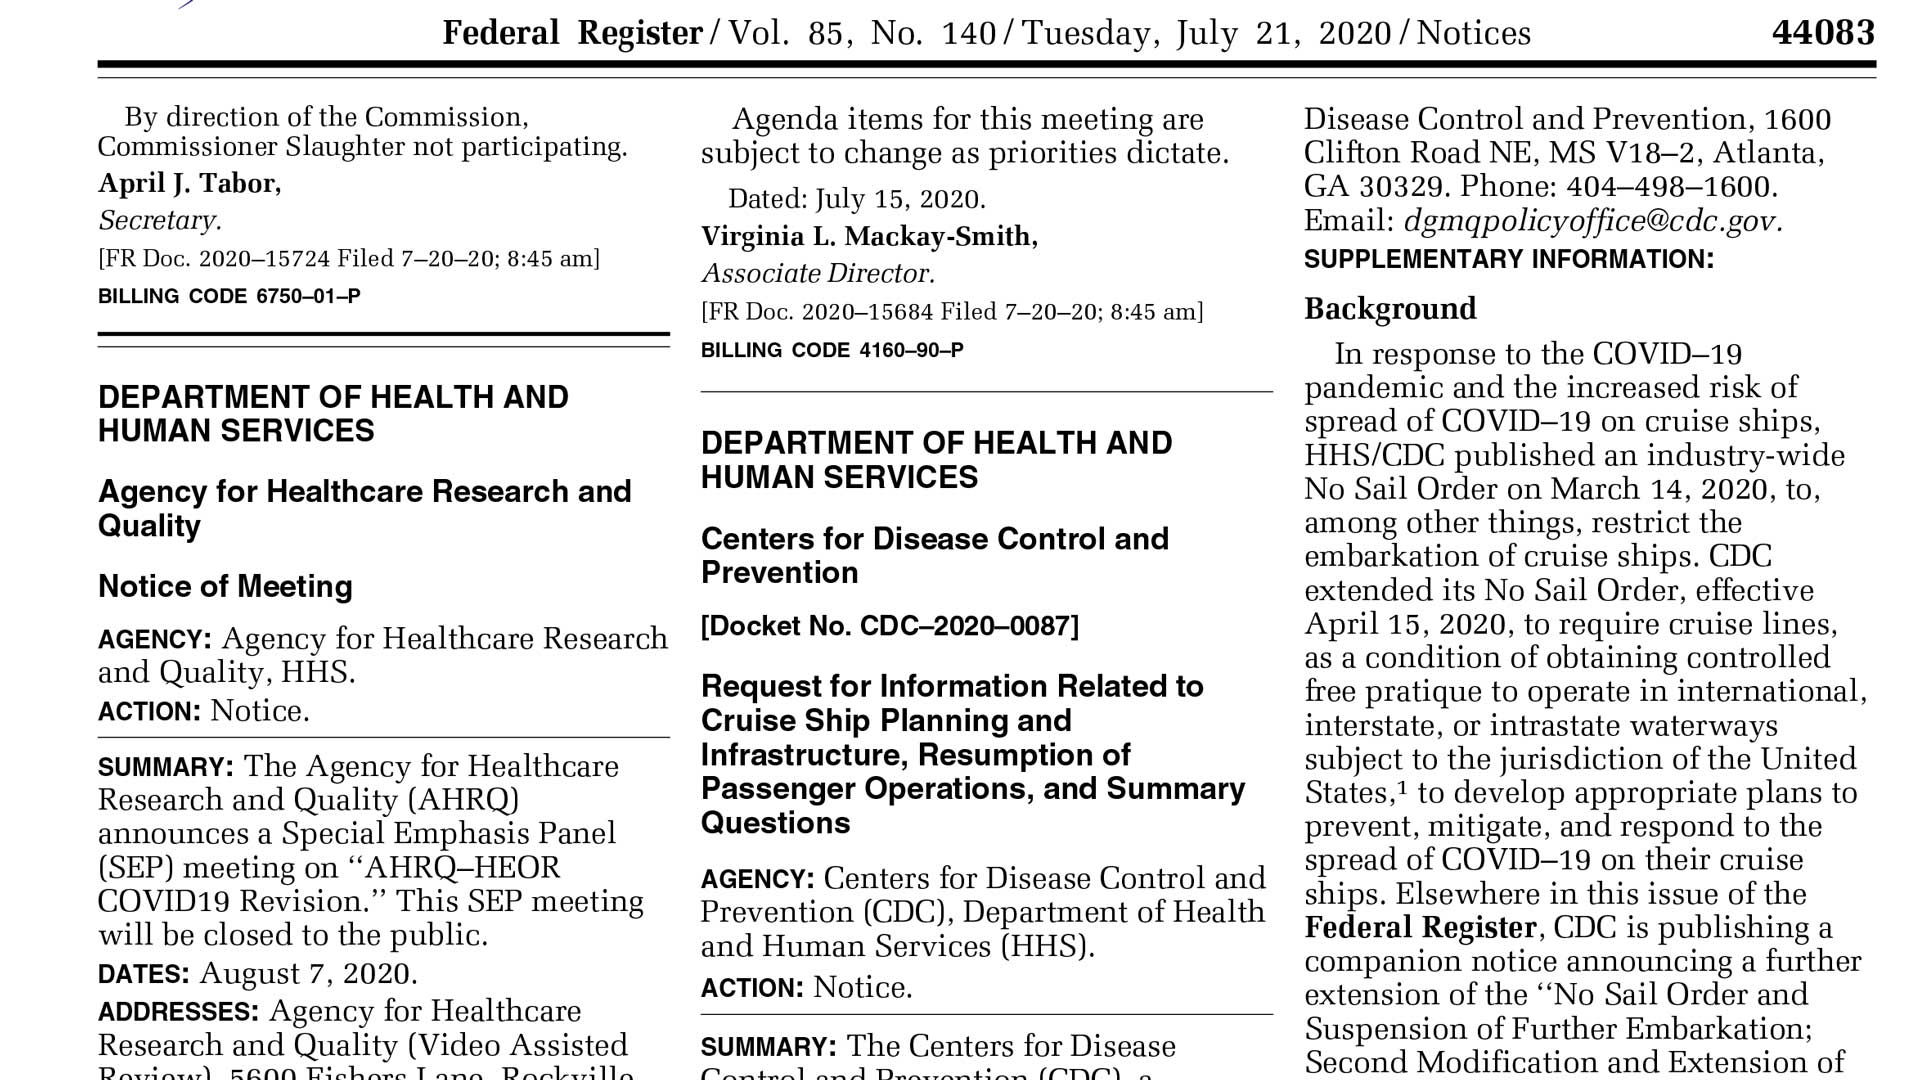 CDC Cruise Resumption Information Request US Federal Register Vol 85 No 140 20200721 Notices